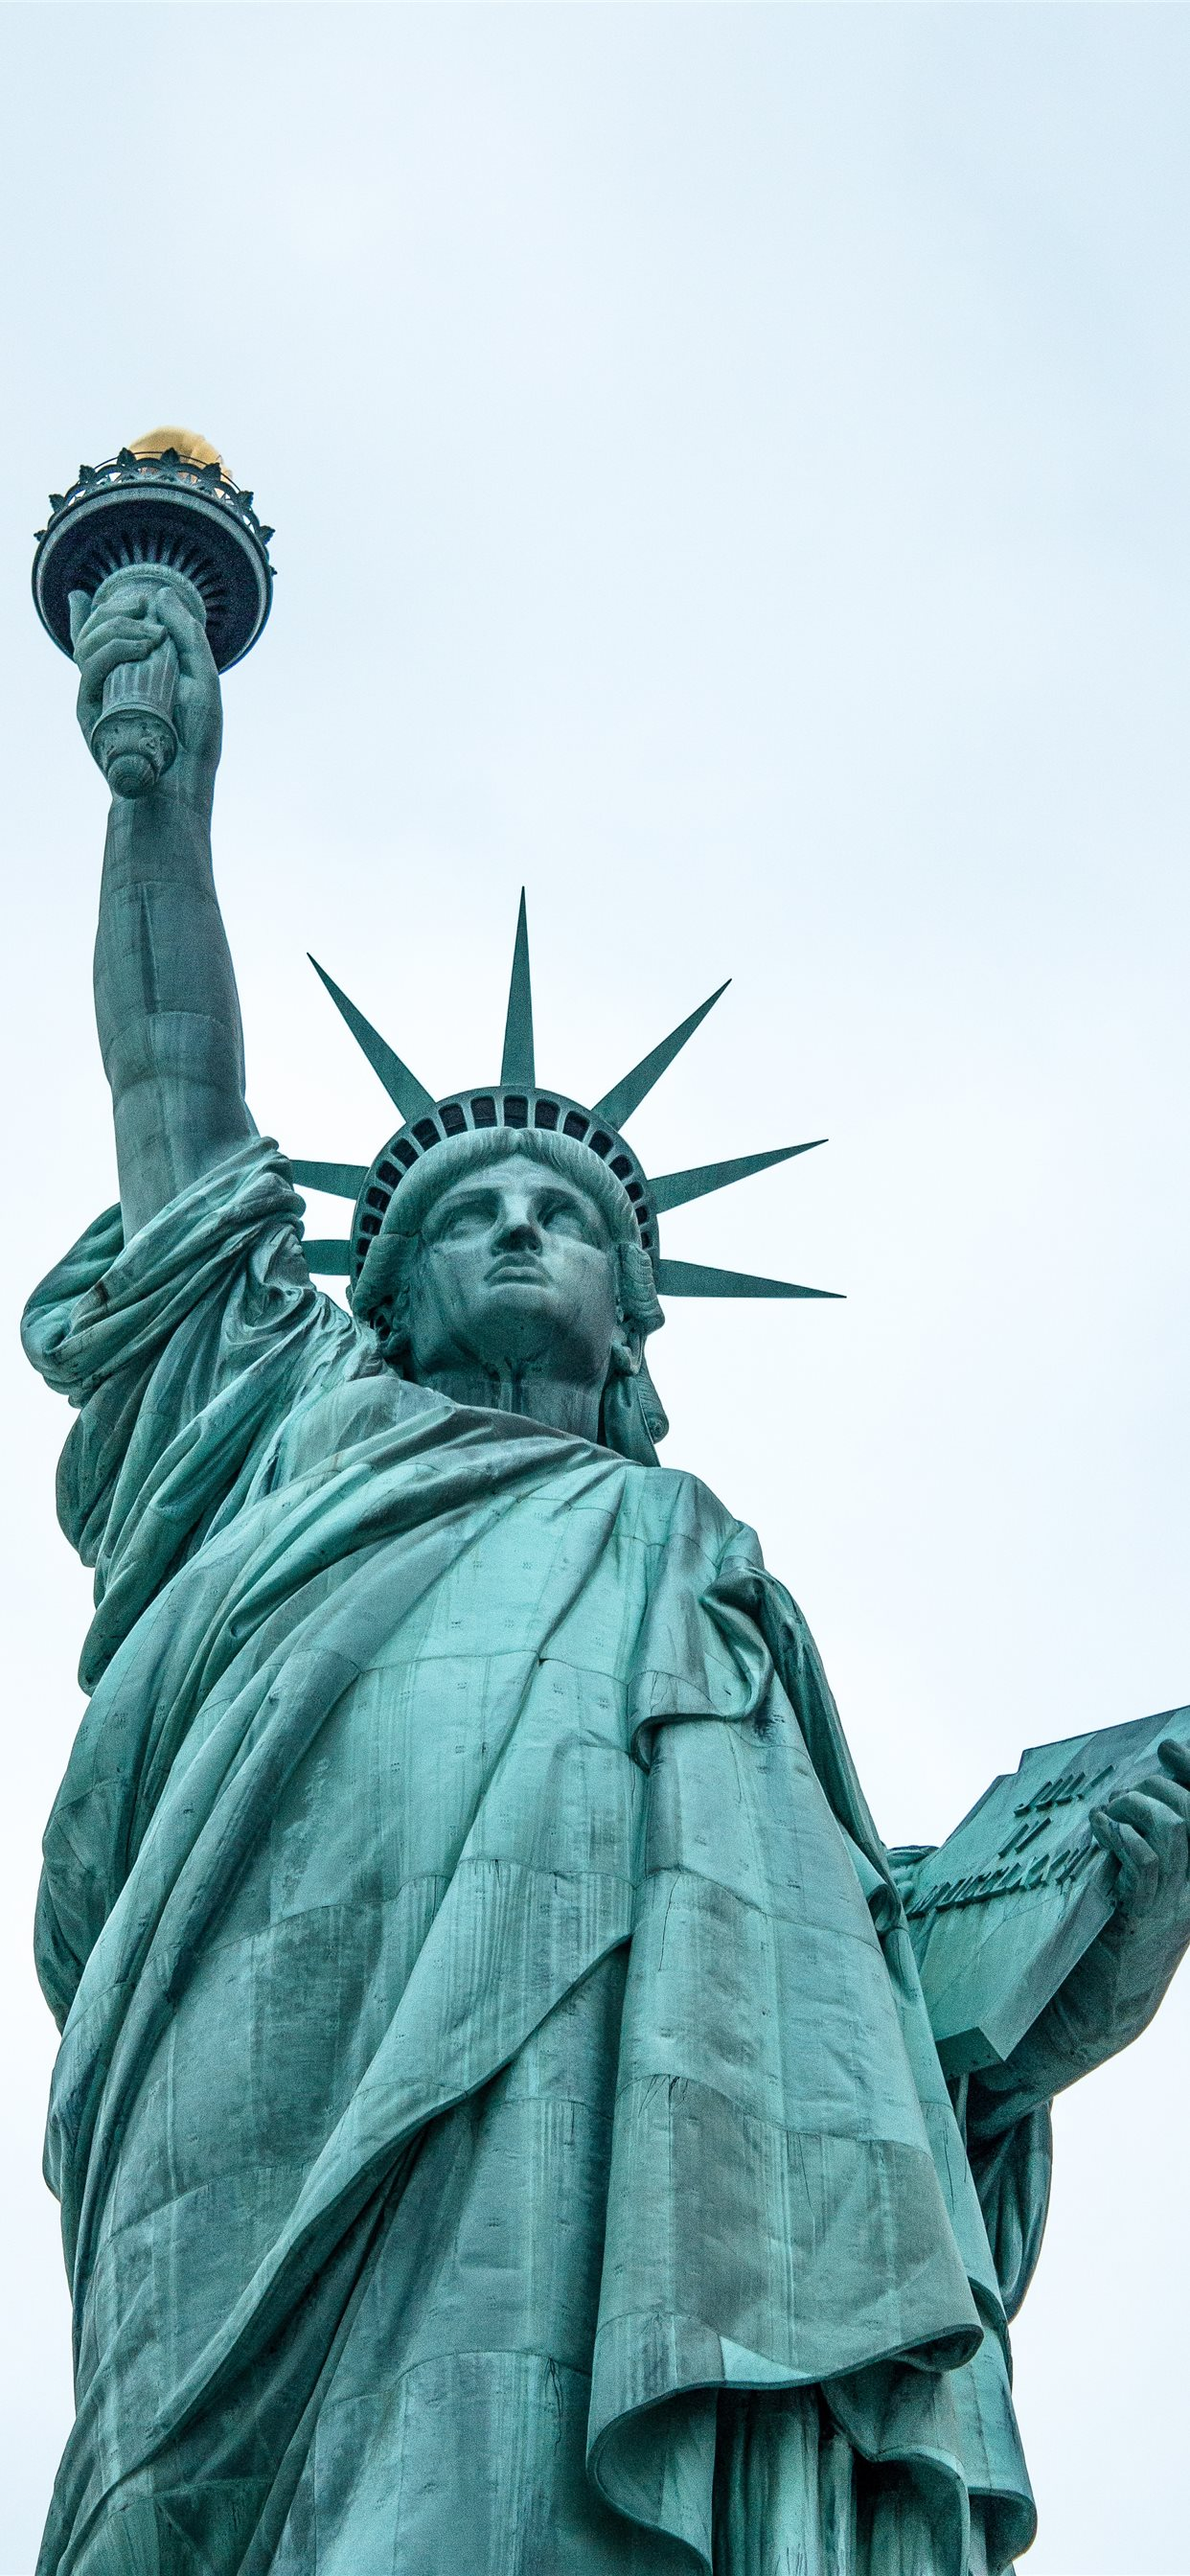 Statue Of Liberty , HD Wallpaper & Backgrounds